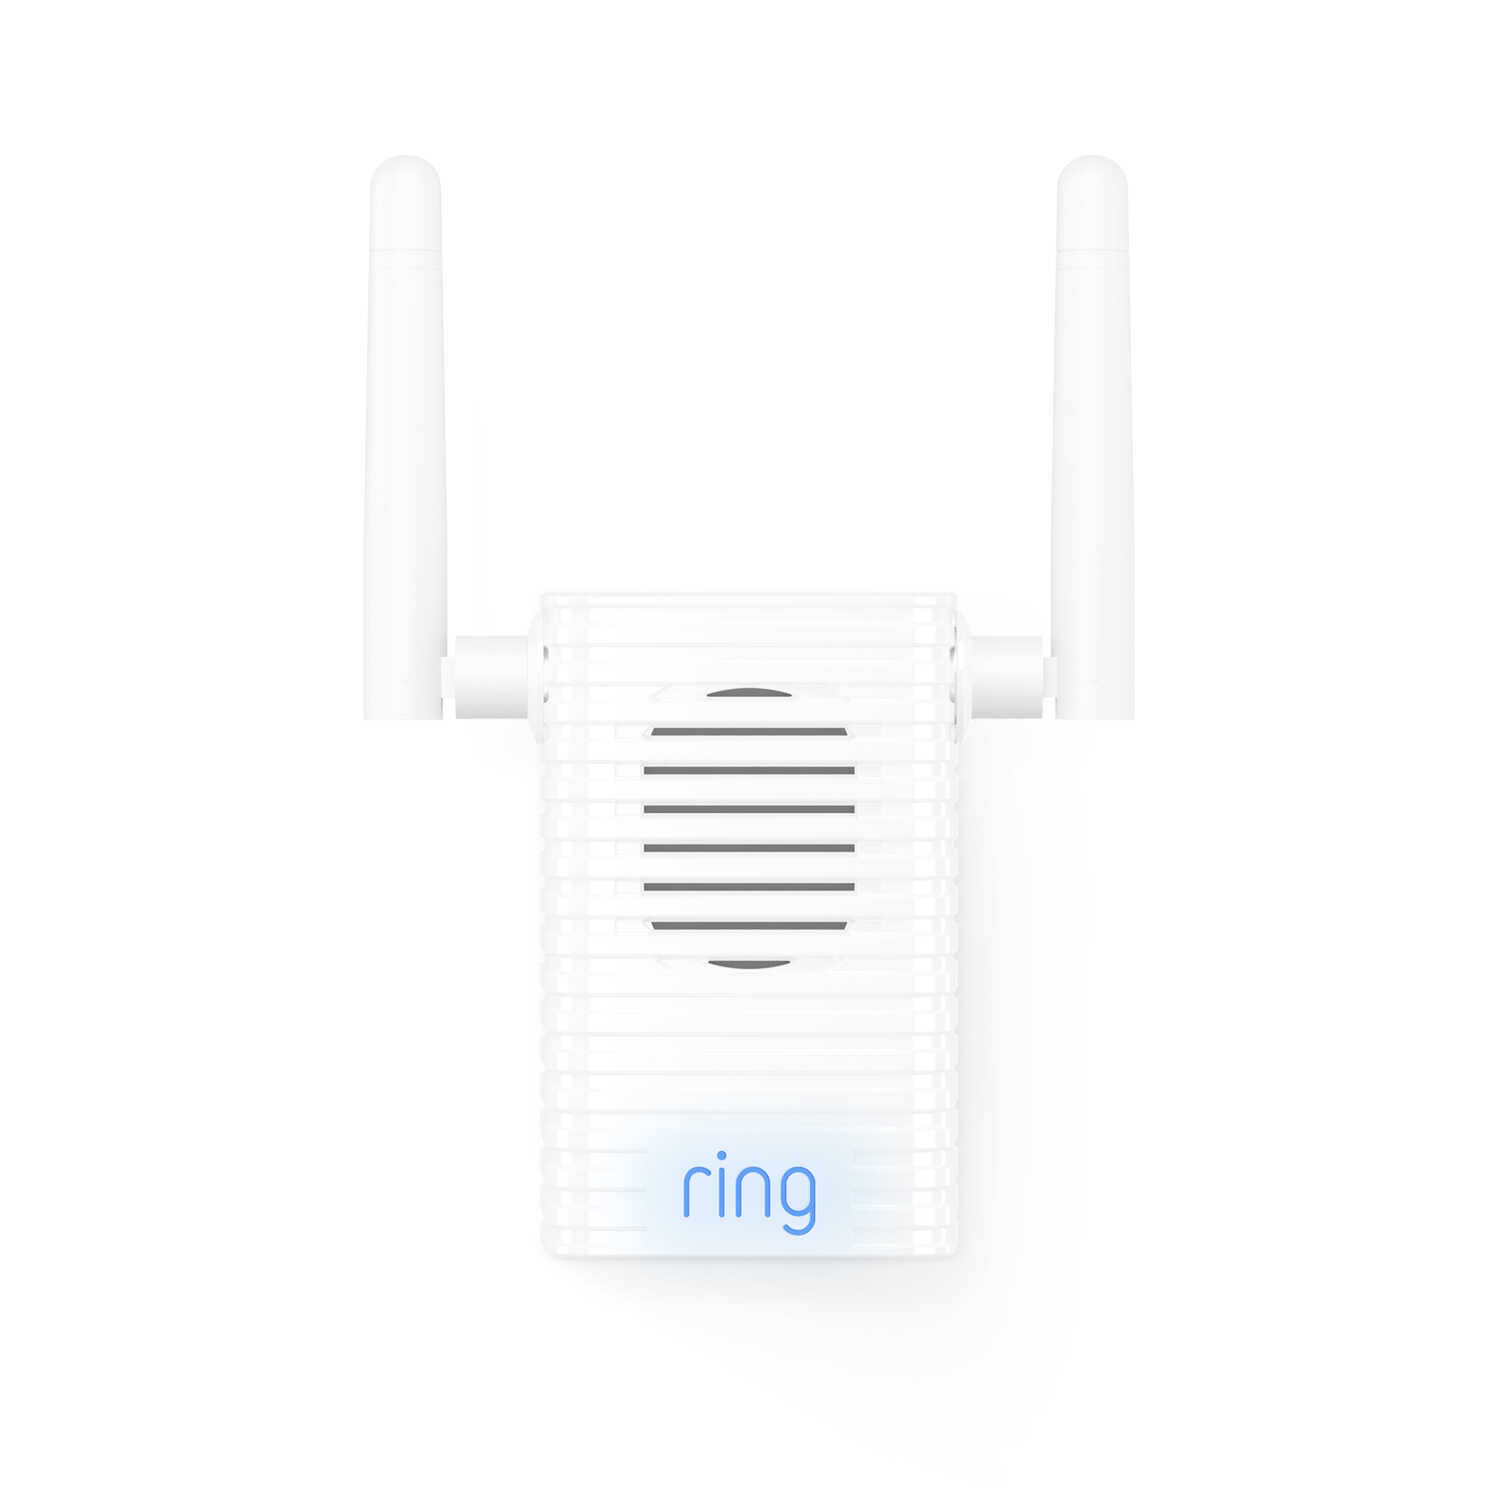 Ring  White  White  Metal/Plastic  Wireless  Doorbell Chime Extender